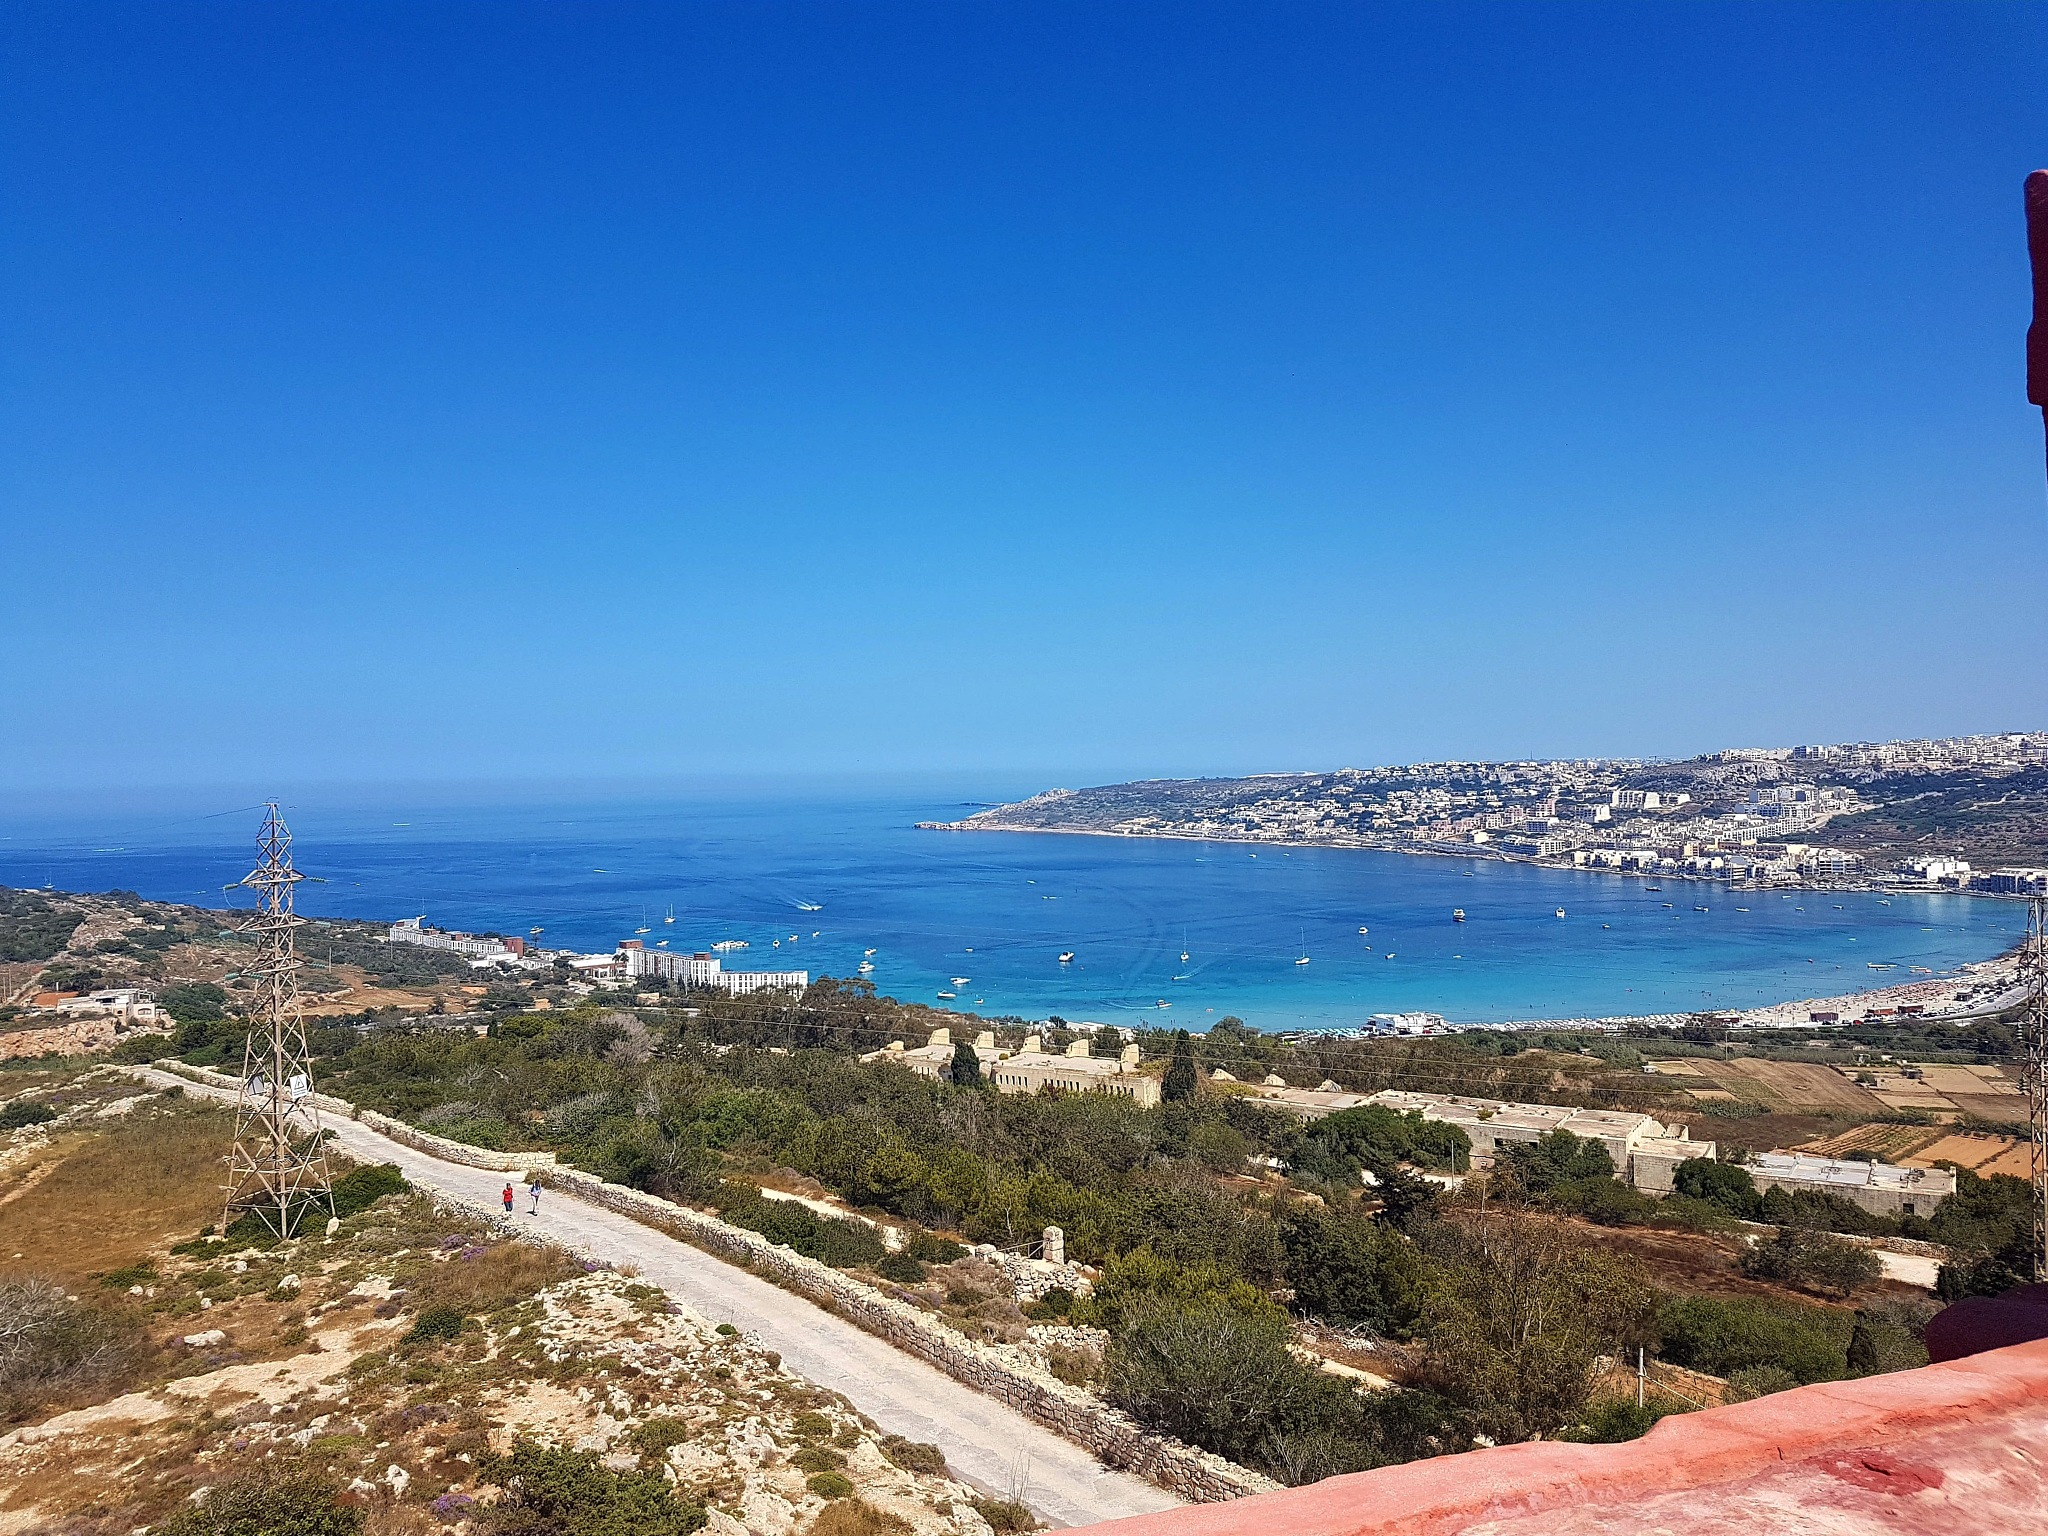 View of Mellieha Bay from Saint Agatha's Tower by Ayrton Walls